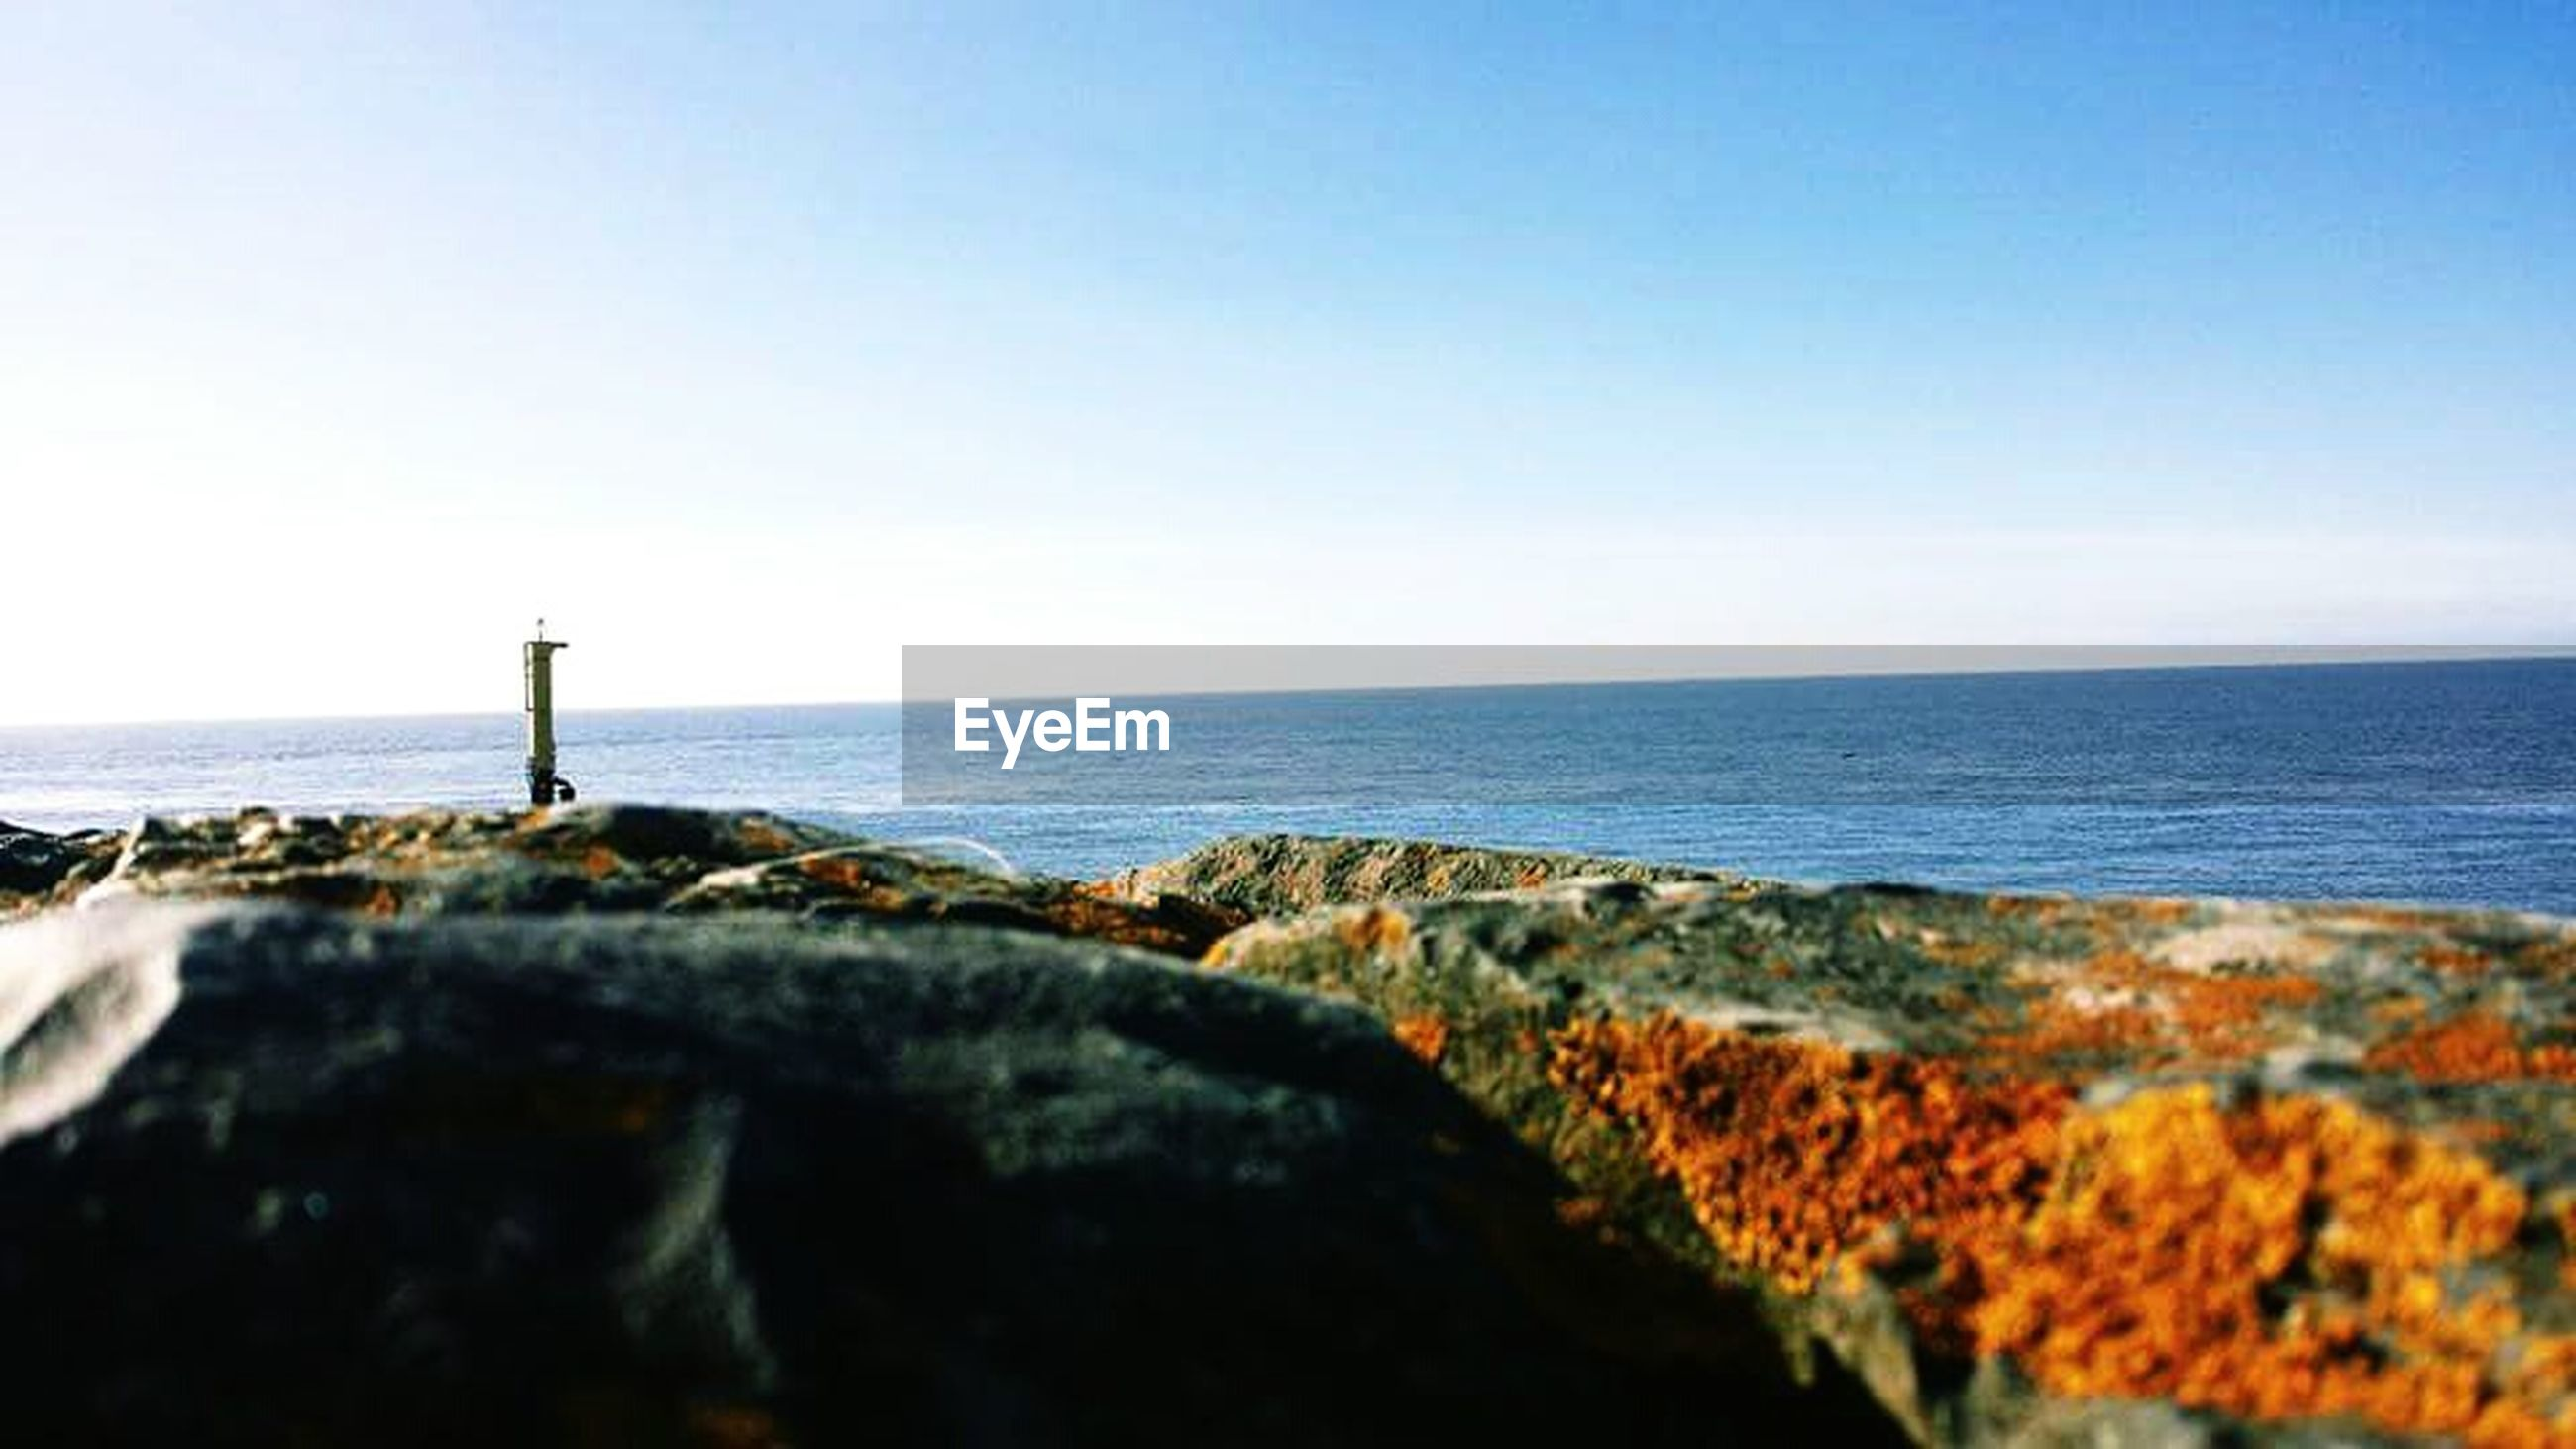 sea, horizon over water, water, nature, beauty in nature, rock - object, clear sky, scenics, sky, sunlight, tranquility, day, beach, outdoors, tranquil scene, no people